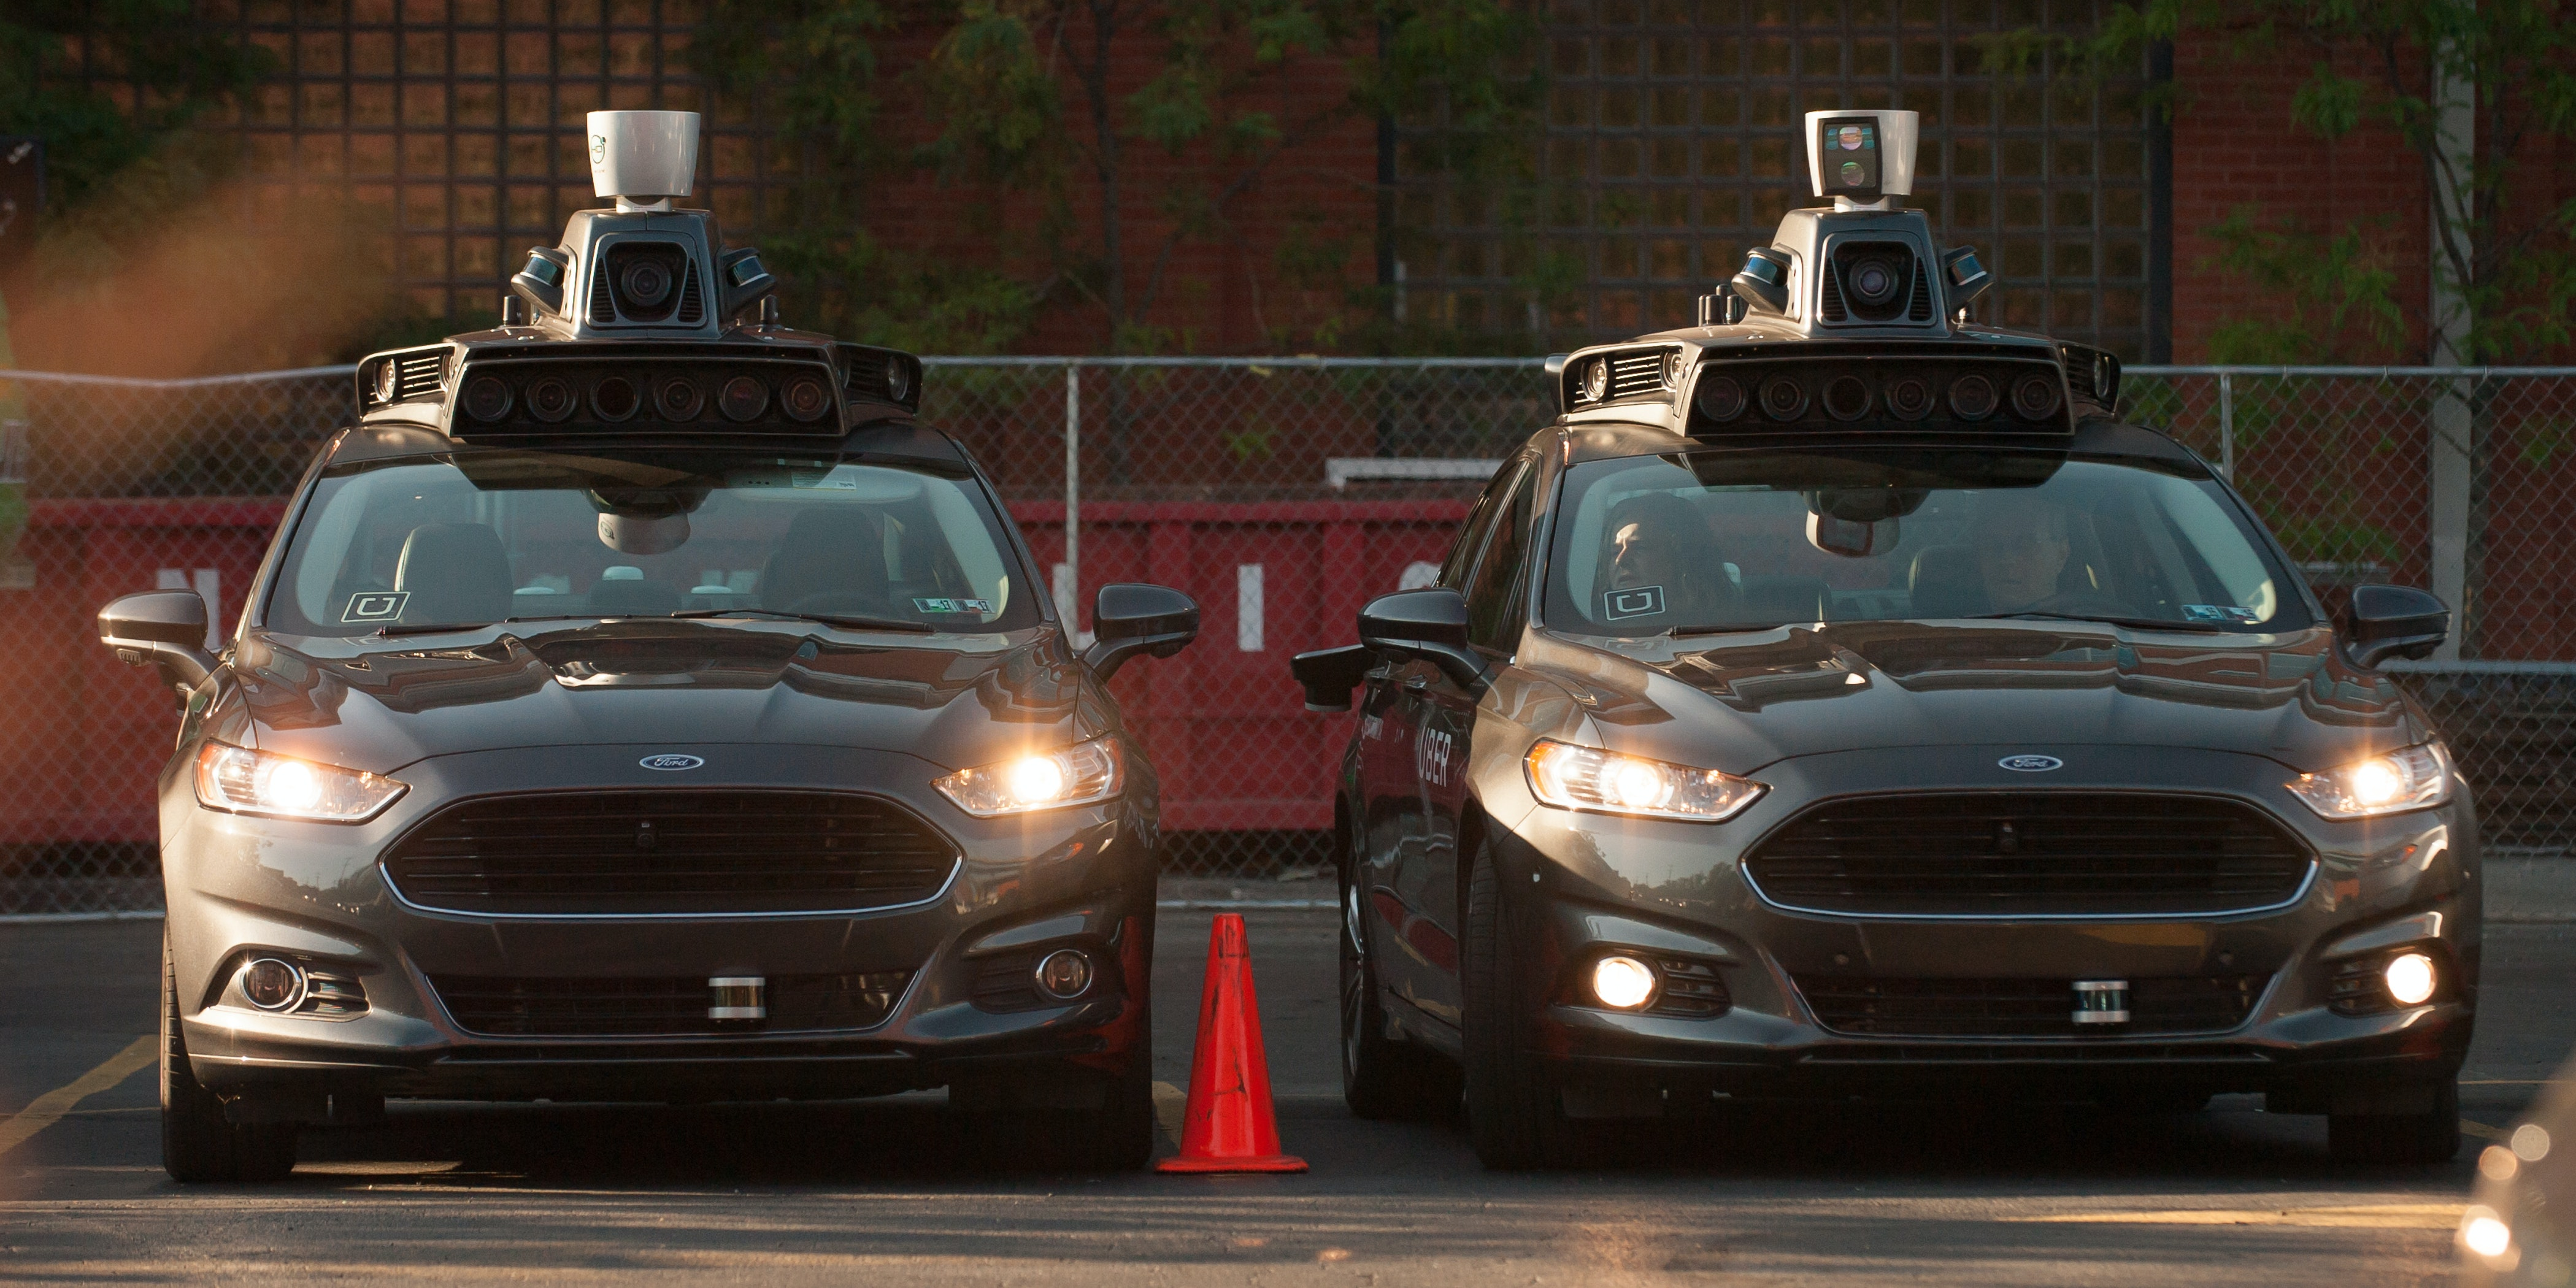 Uber driverless Ford Fusions sit in the Uber Technical Center parking lot with their lights on for some reason.